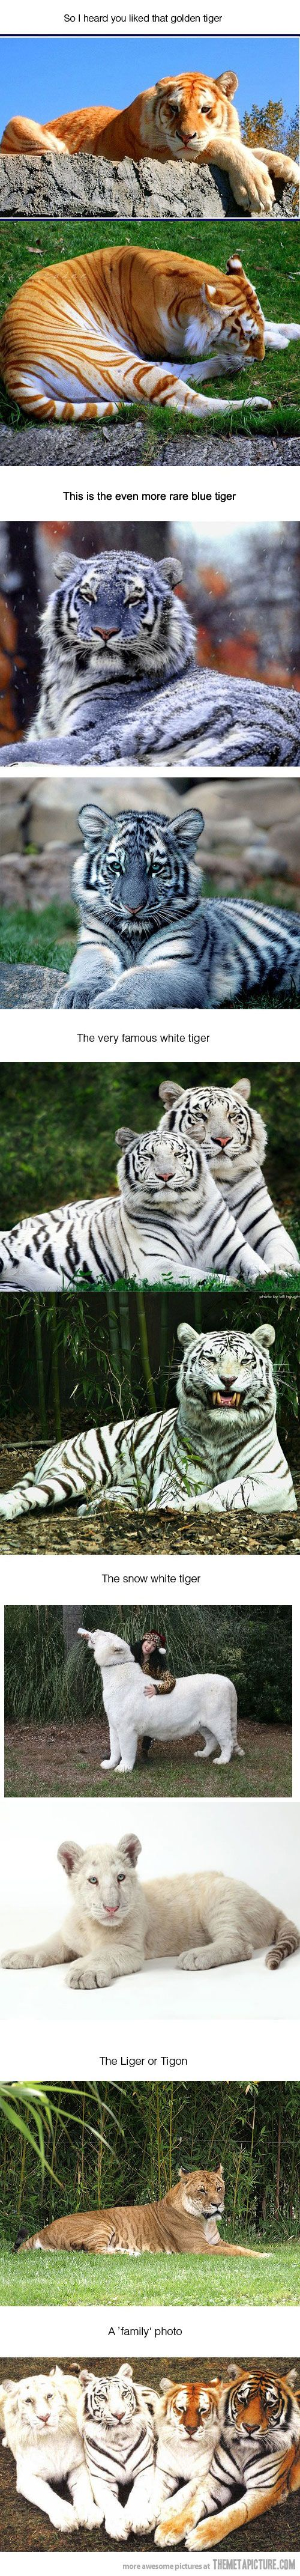 Rare tigers Woah~ blue tigers. Let's hope they aren't all murdered too.